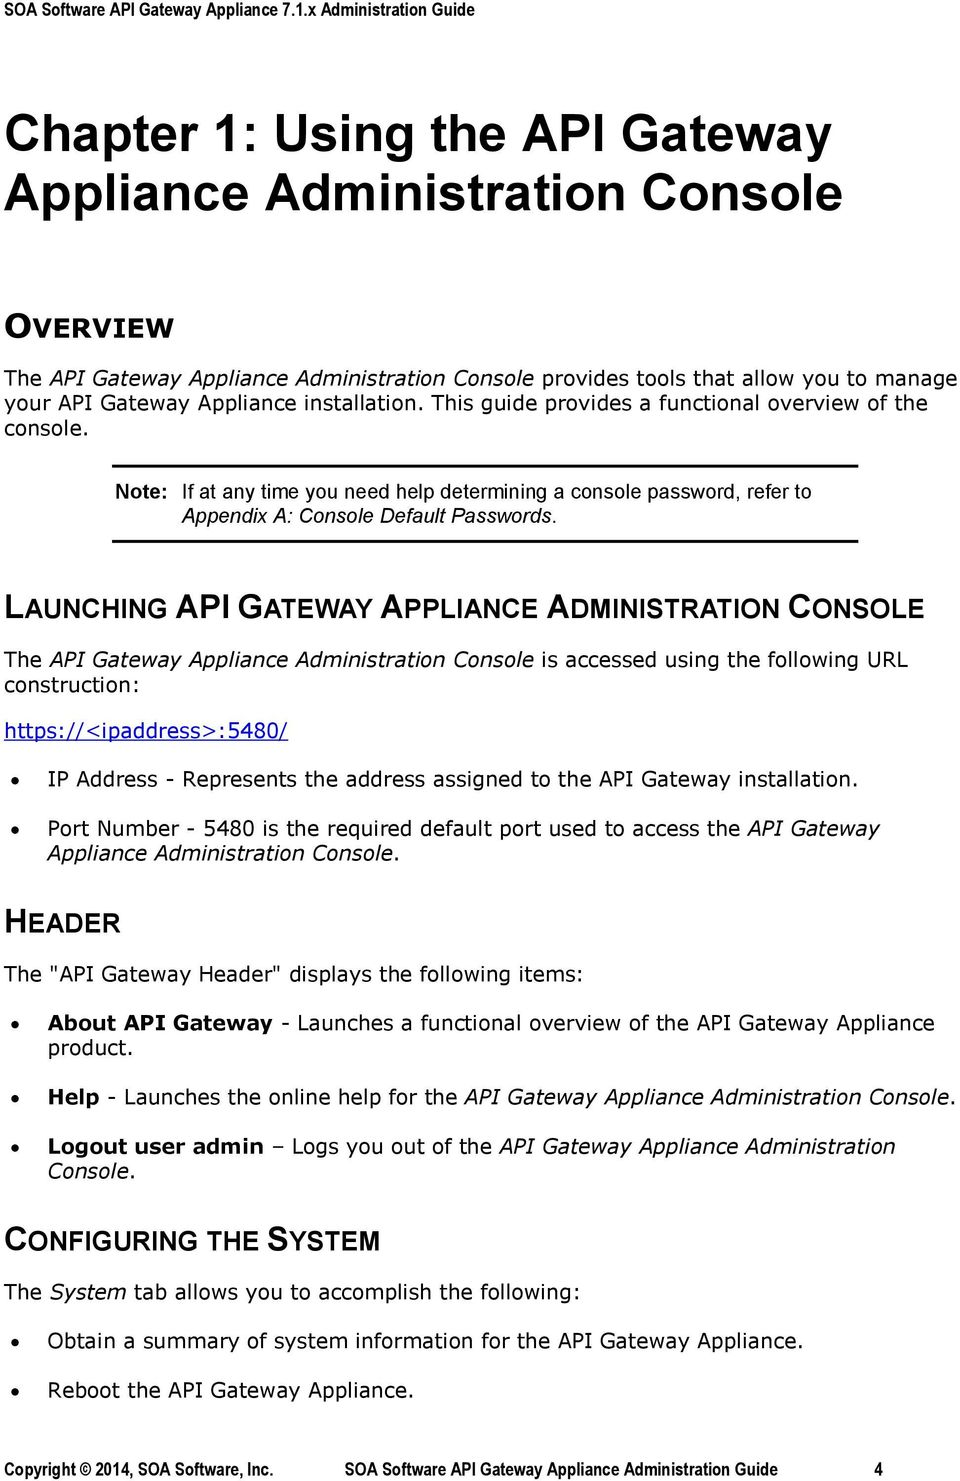 LAUNCHING API GATEWAY APPLIANCE ADMINISTRATION CONSOLE The API Gateway Appliance Administration Console is accessed using the following URL construction: https://<ipaddress>:5480/ IP Address -